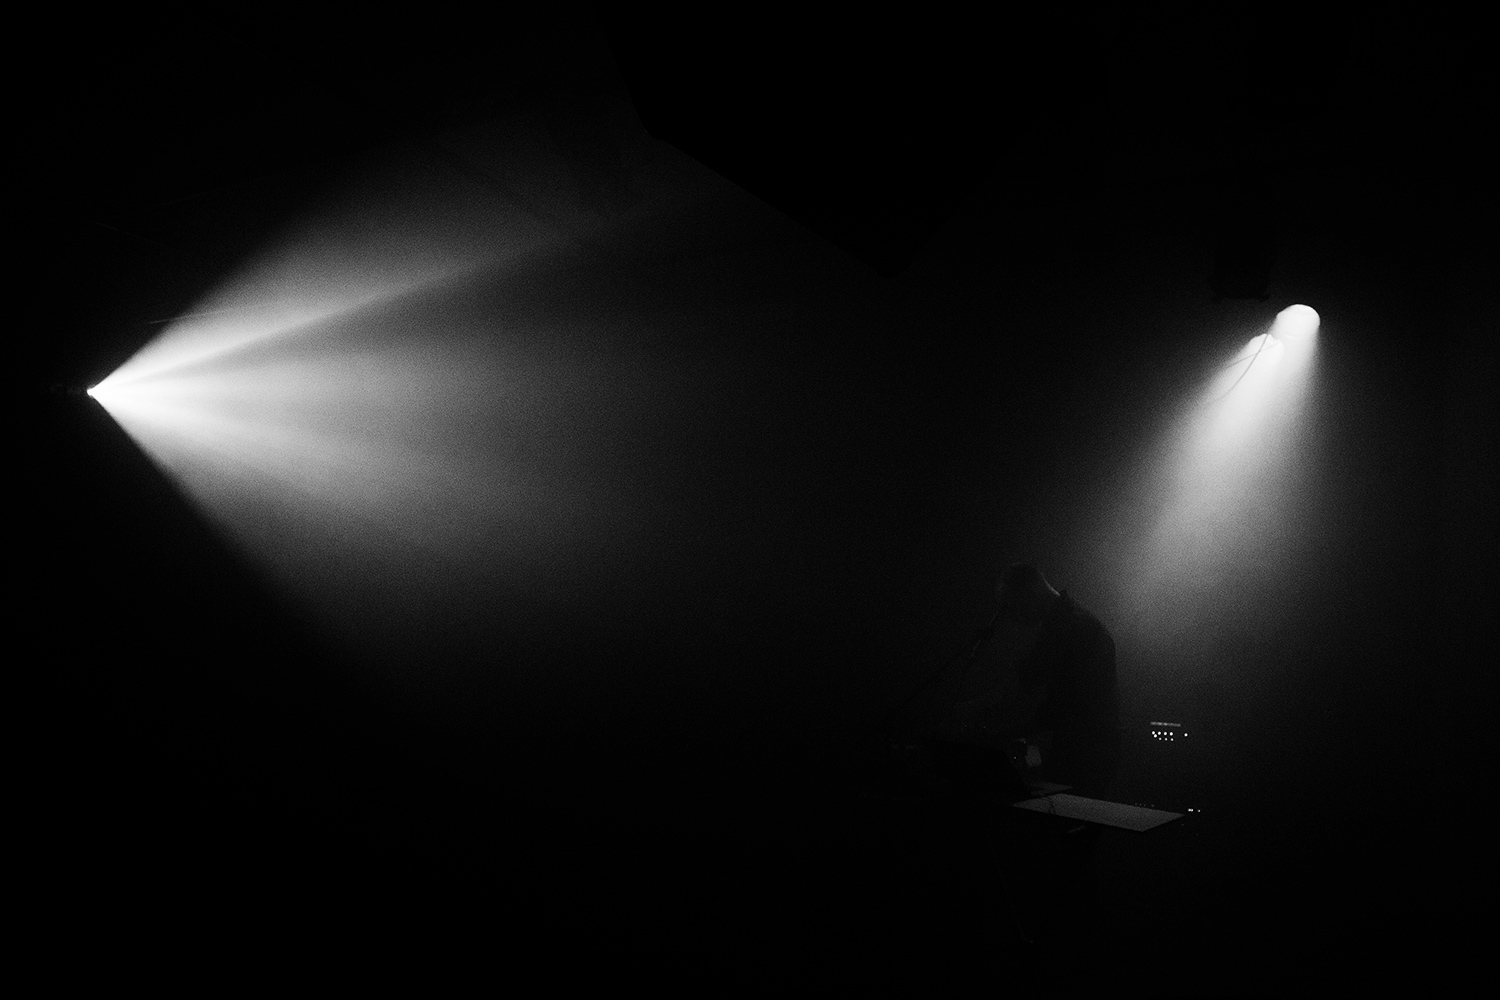 Run Dust (Luke Calzonetti) by Laurent Orseau - SMOG - Les Ateliers Claus - Brussels, Belgium #2